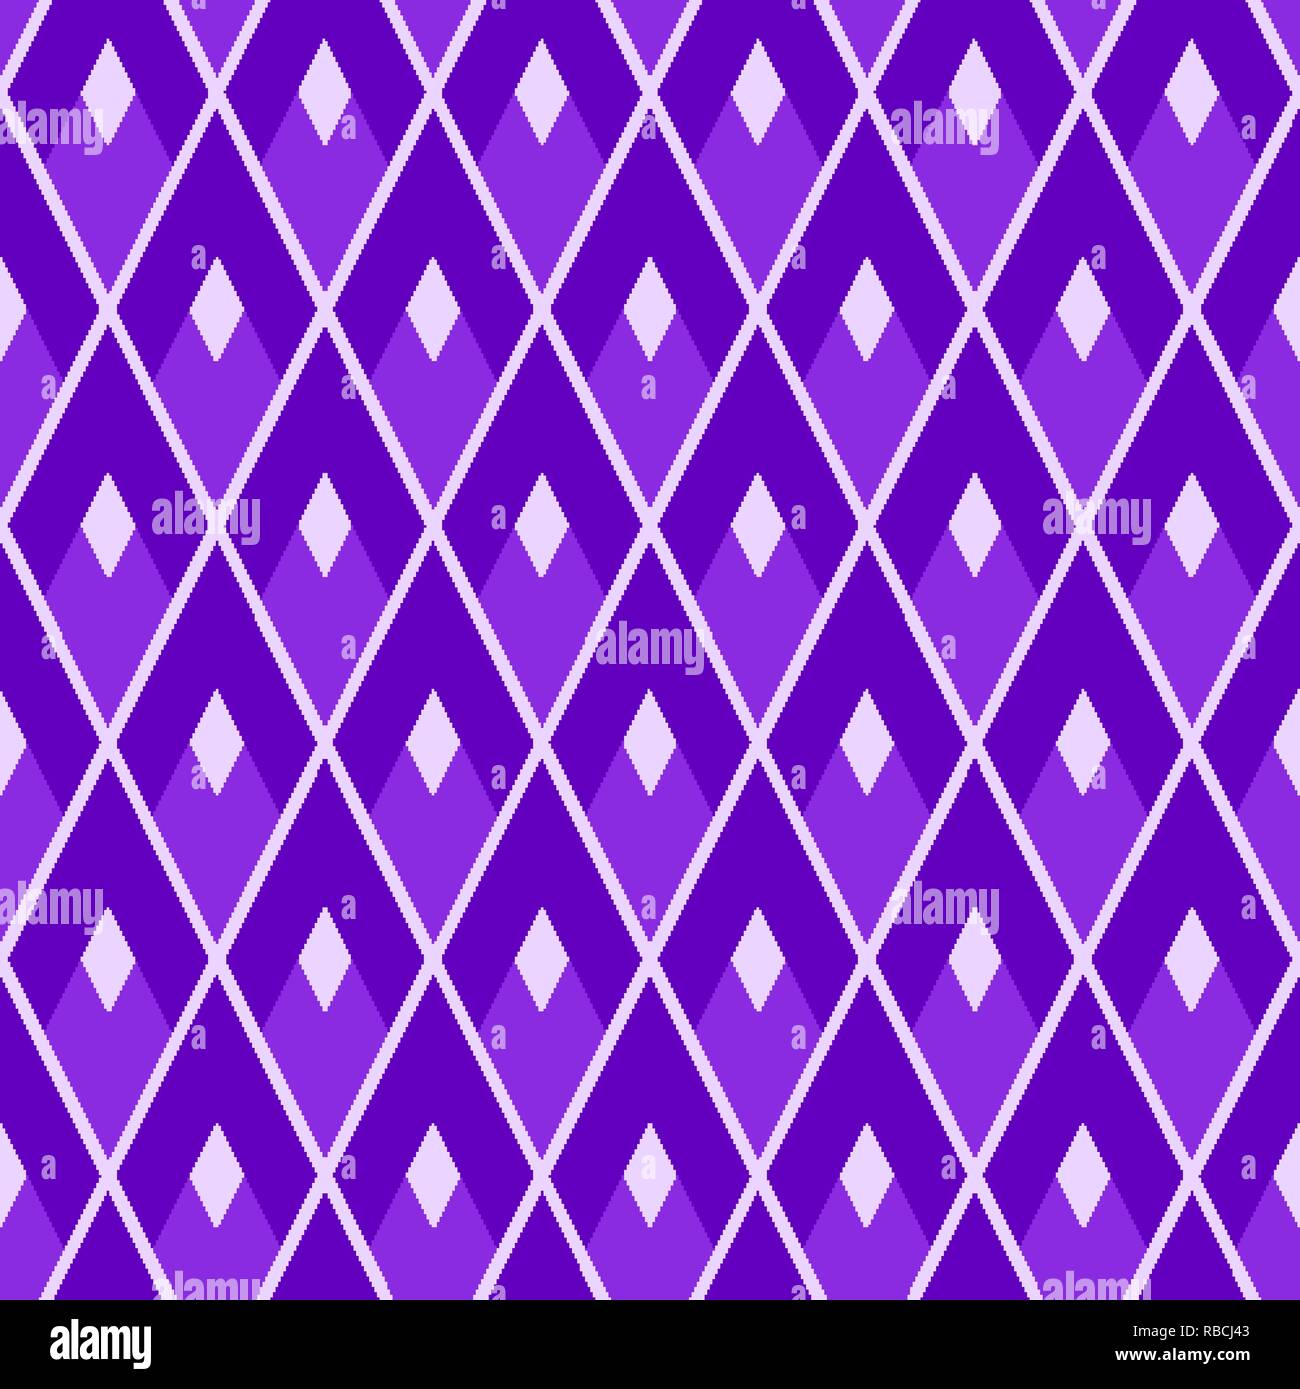 Purple seamless geometric pattern grid made of lozenges - Stock Vector